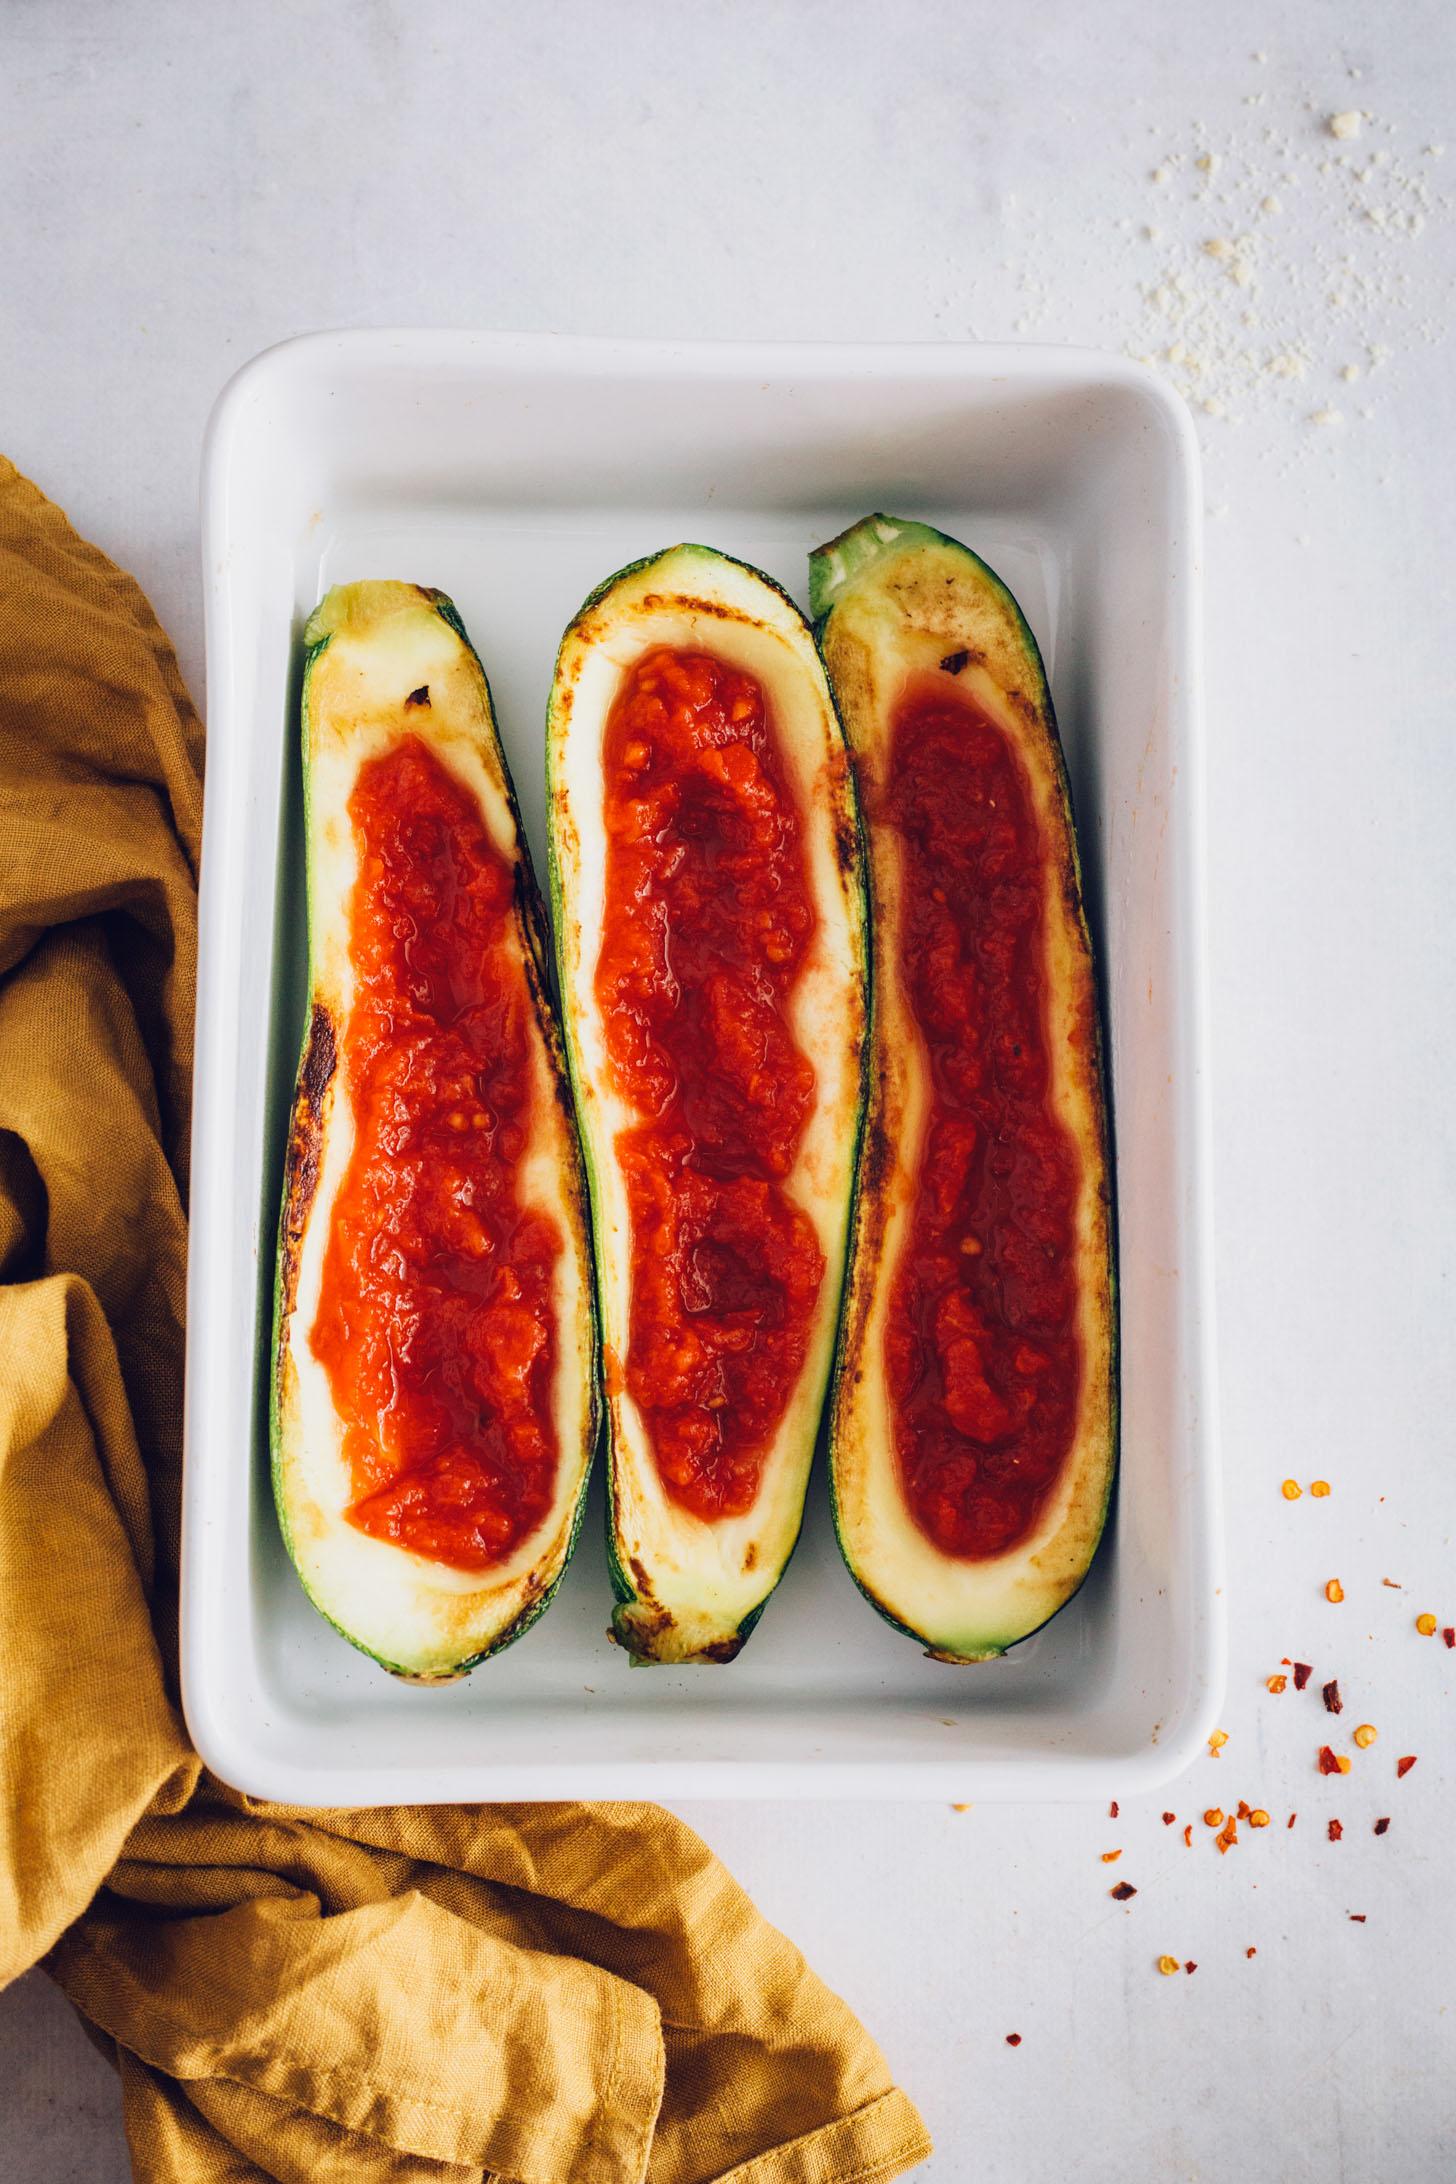 Baking pan of zucchini boats with marinara